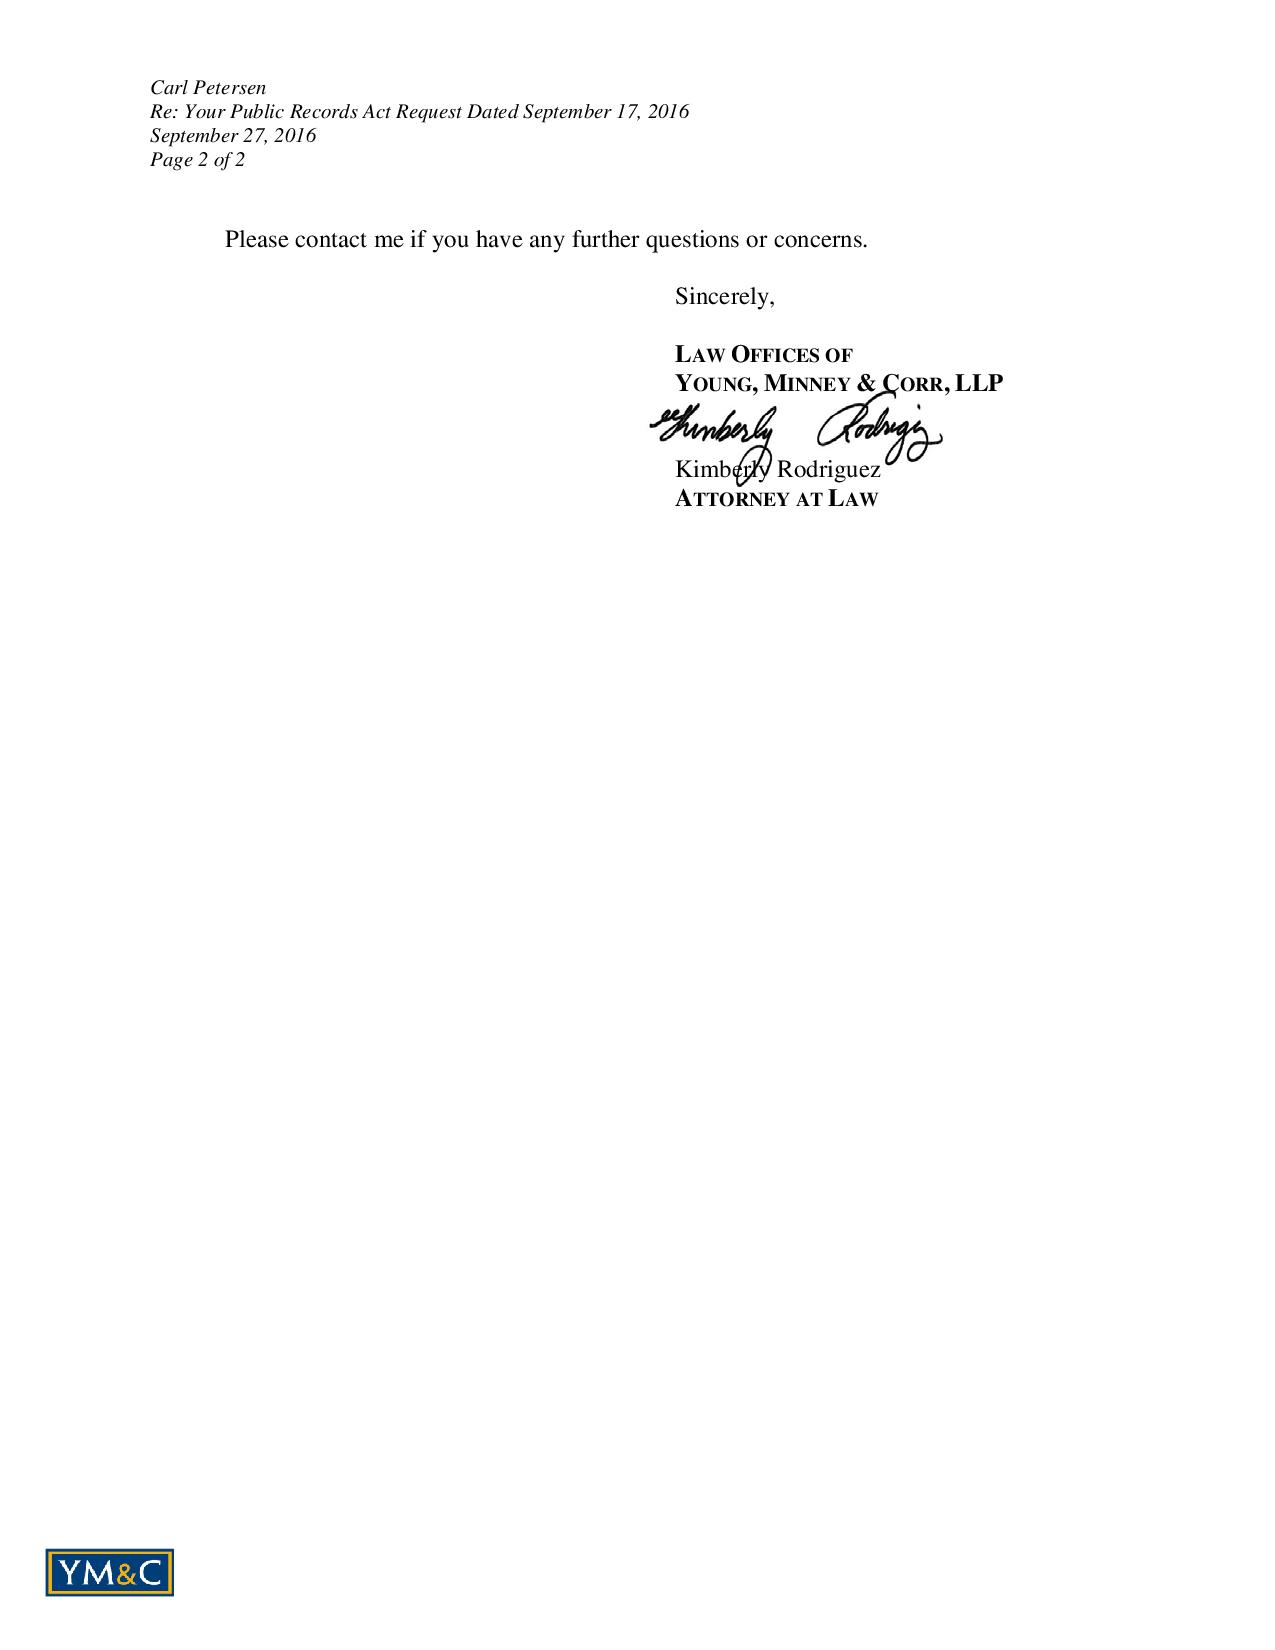 Ltr_C_Petersen_re_Public_Records_Act_Request_No_5_092716_Contract-page-002.jpg